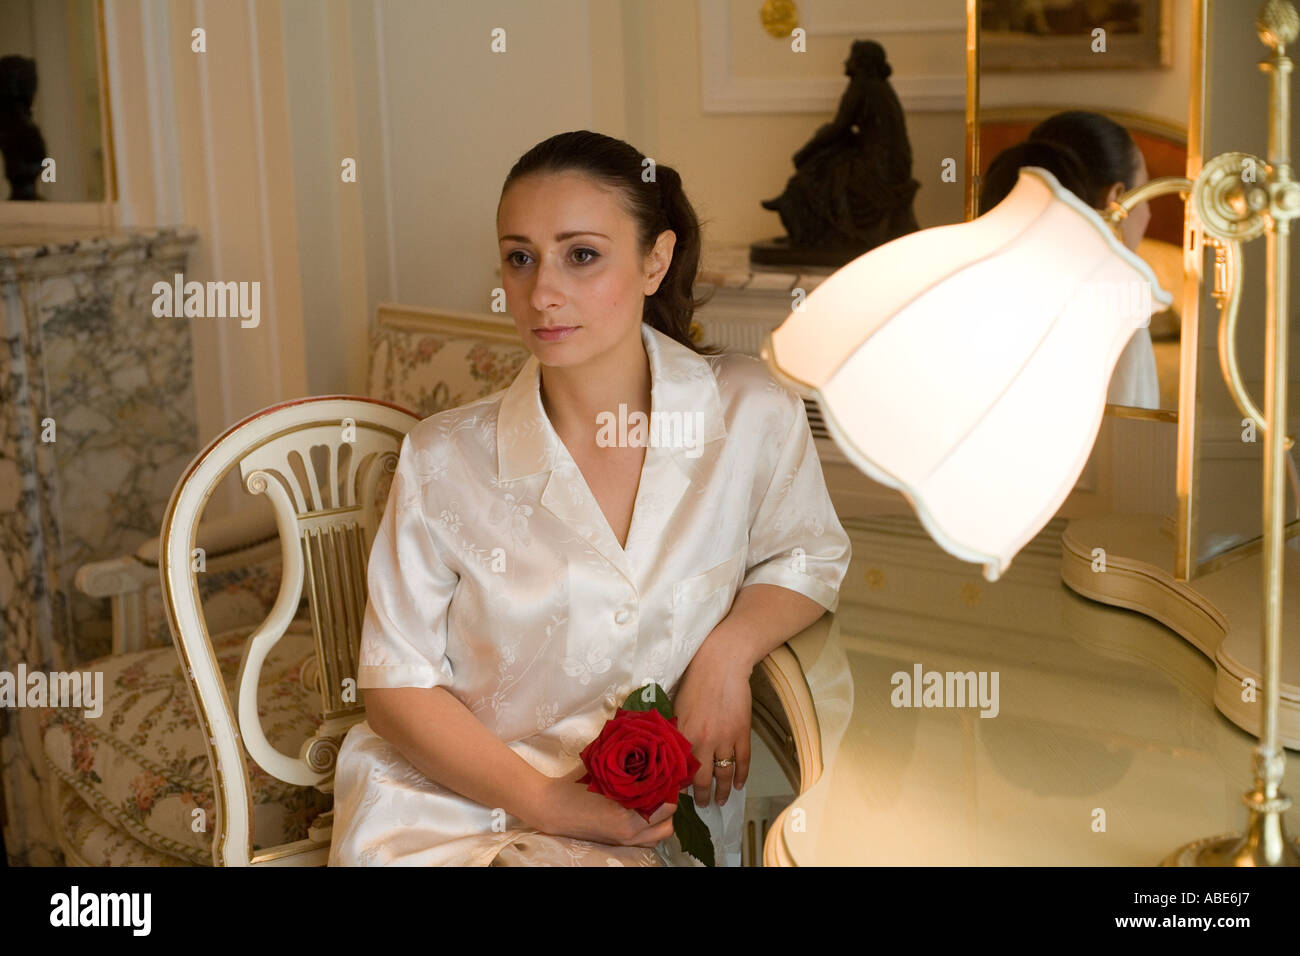 Dressing Gown Hotel Stock Photos & Dressing Gown Hotel Stock Images ...